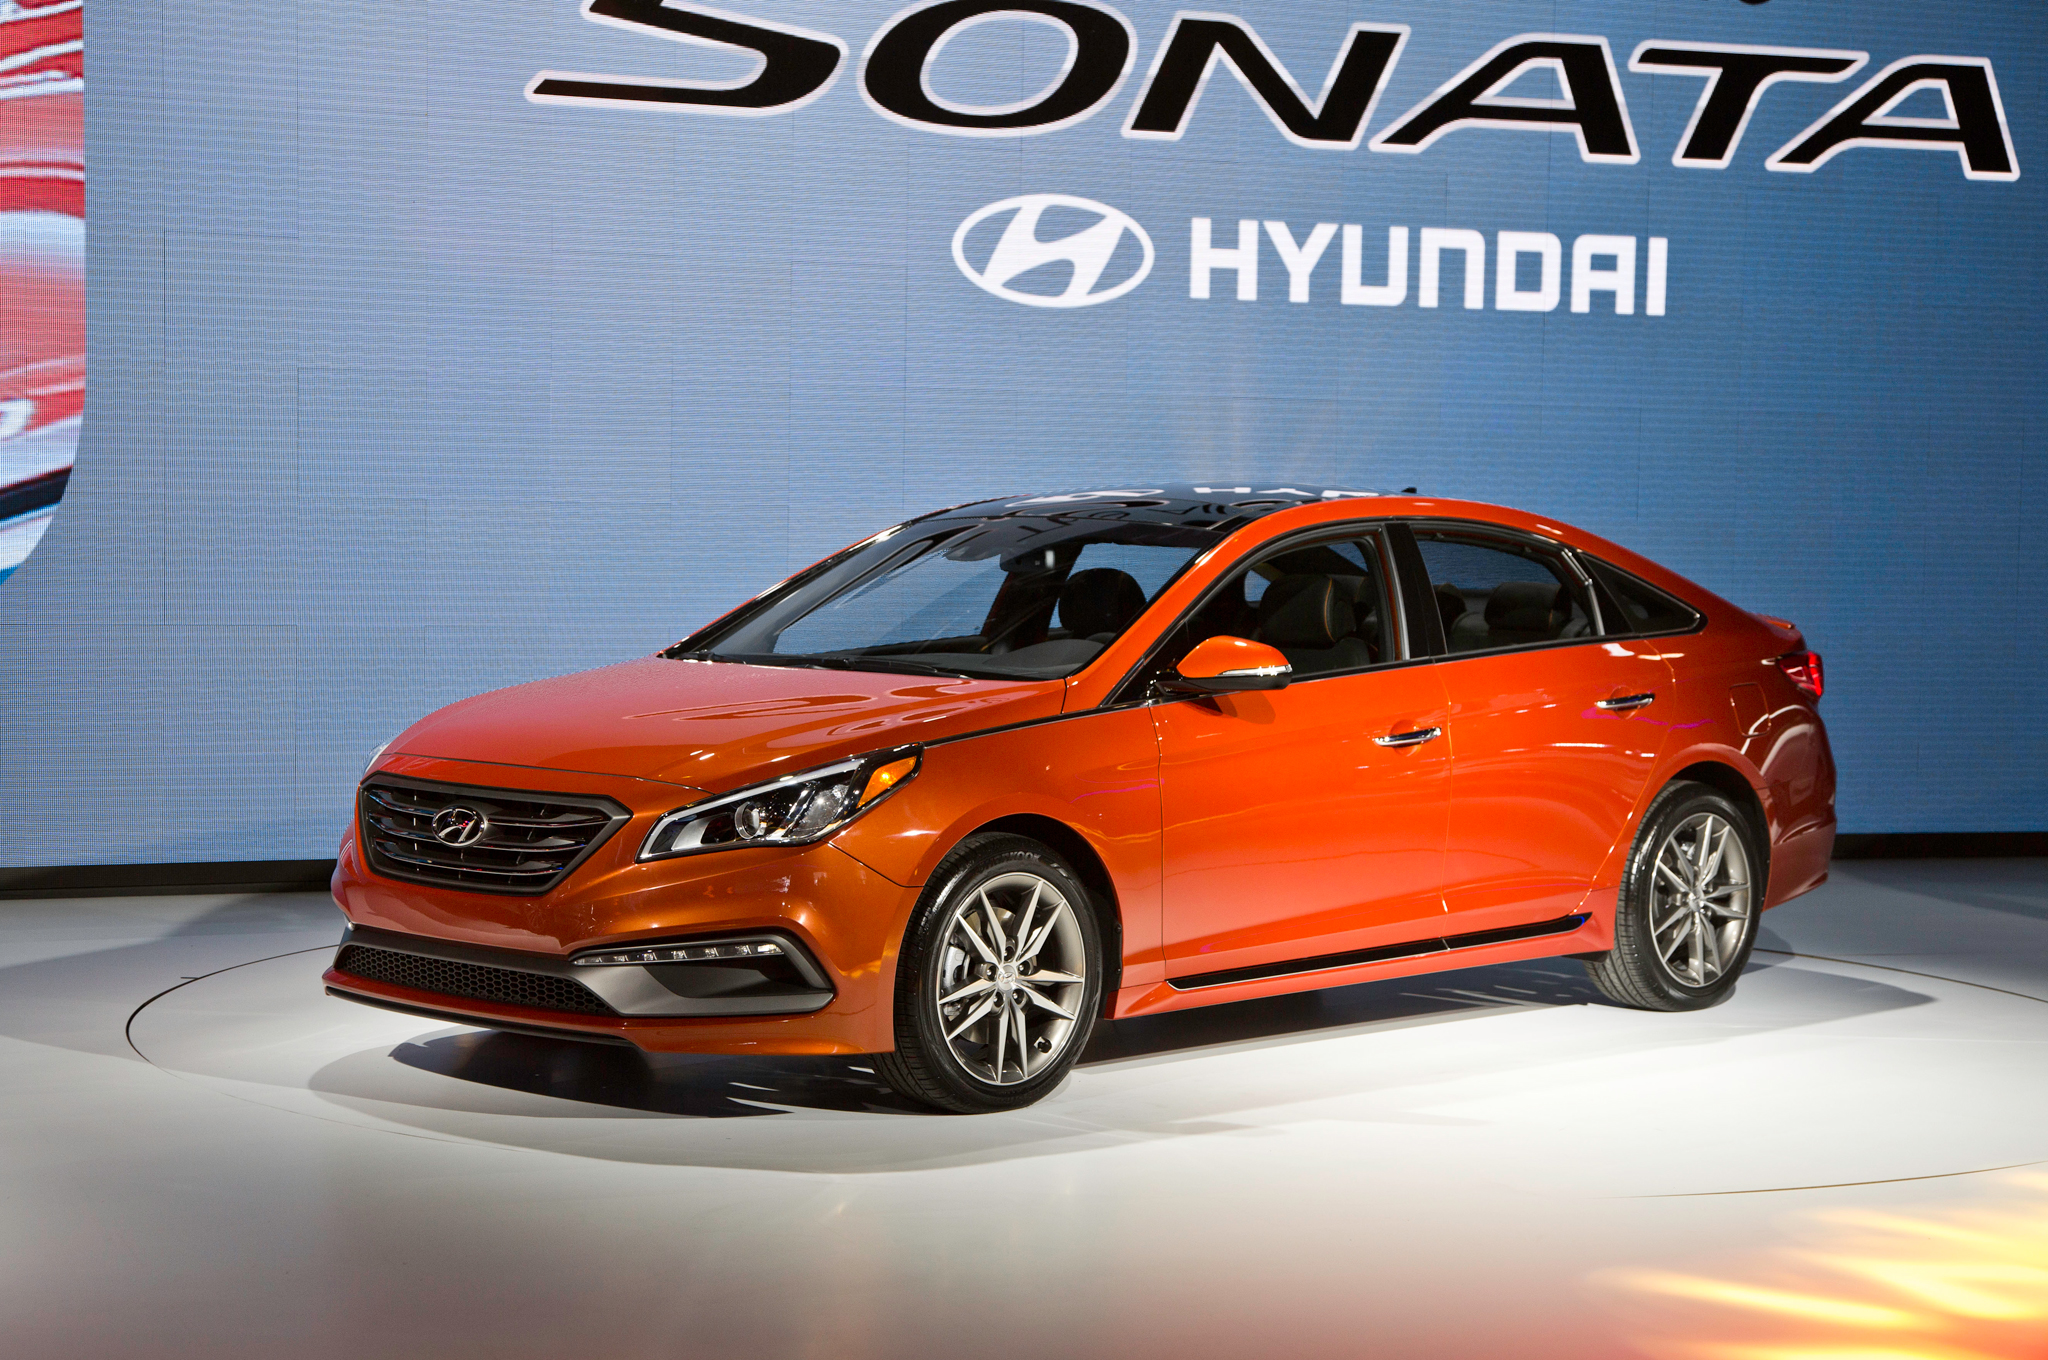 2015 Hyundai Sonata Auto Show (Photo 1 of 11)